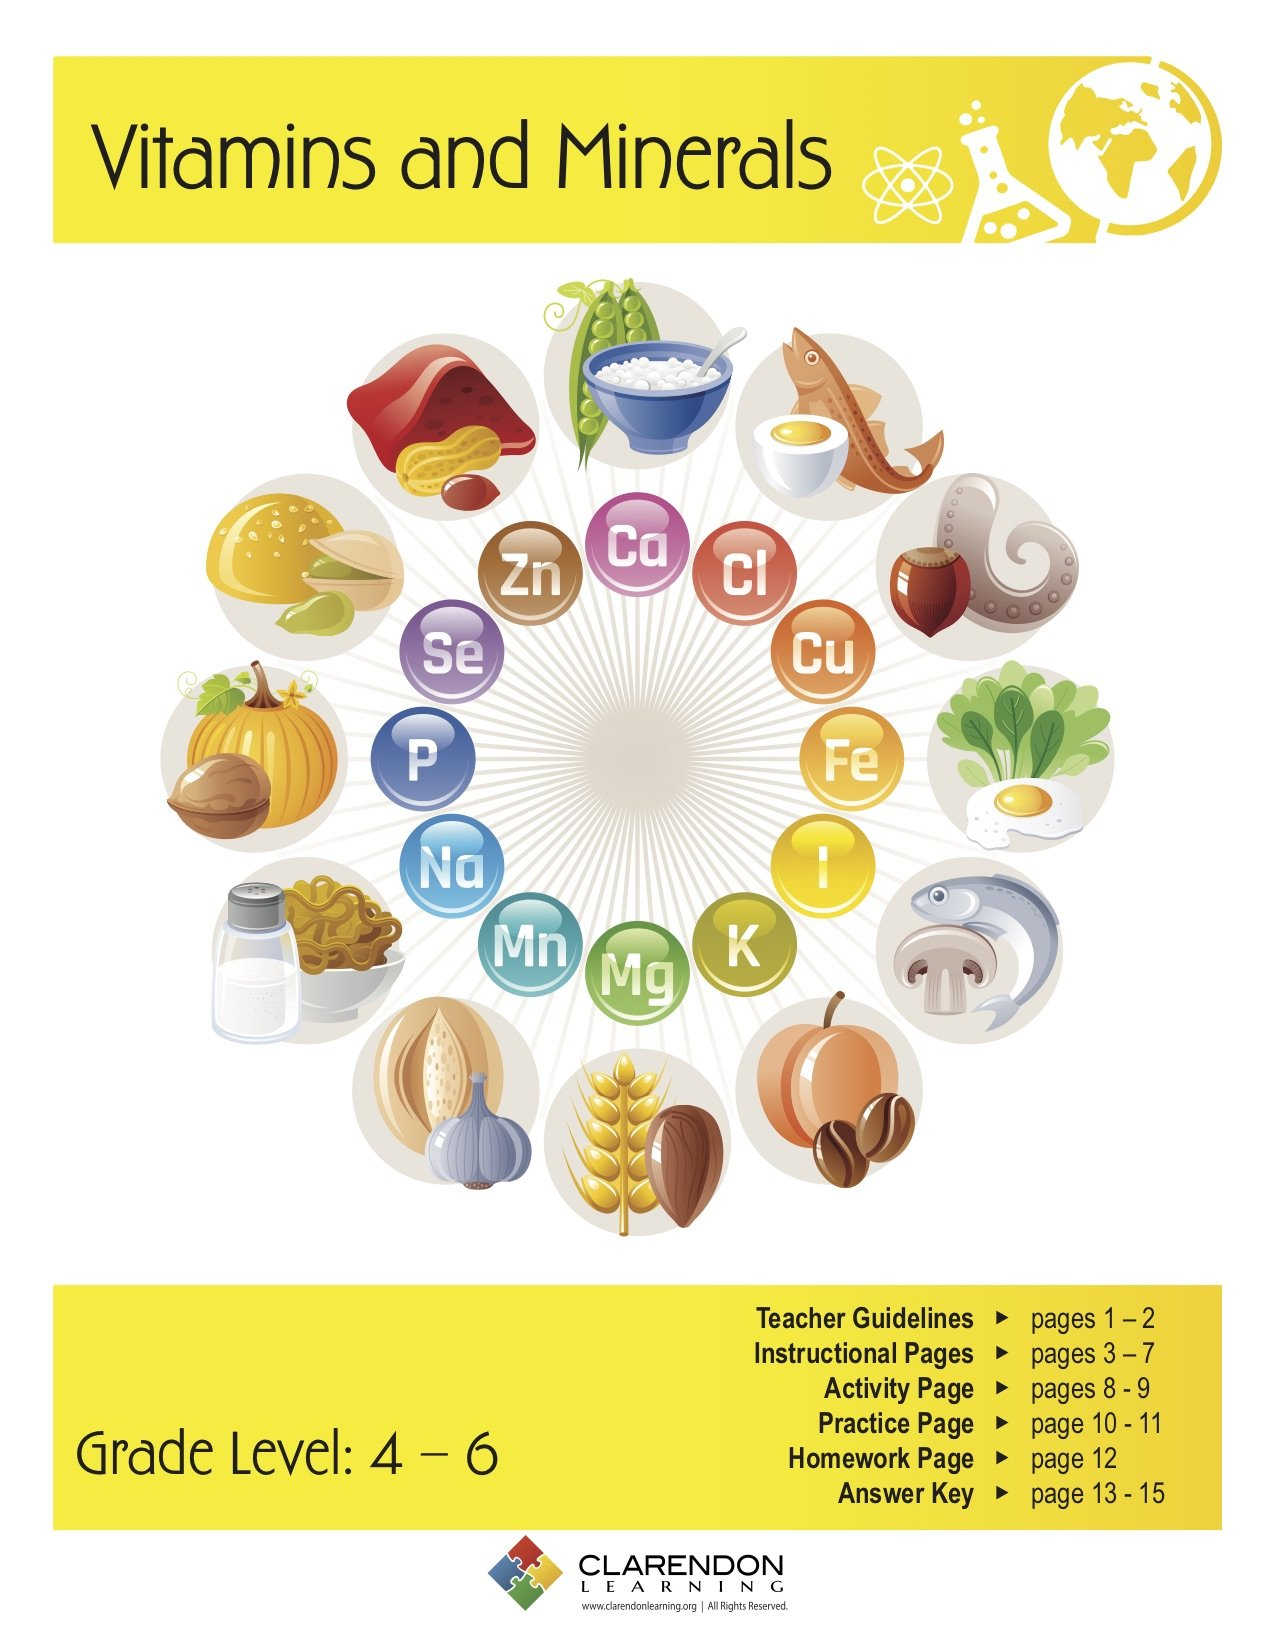 Vitamins And Minerals Lesson Plan Clarendon Learning